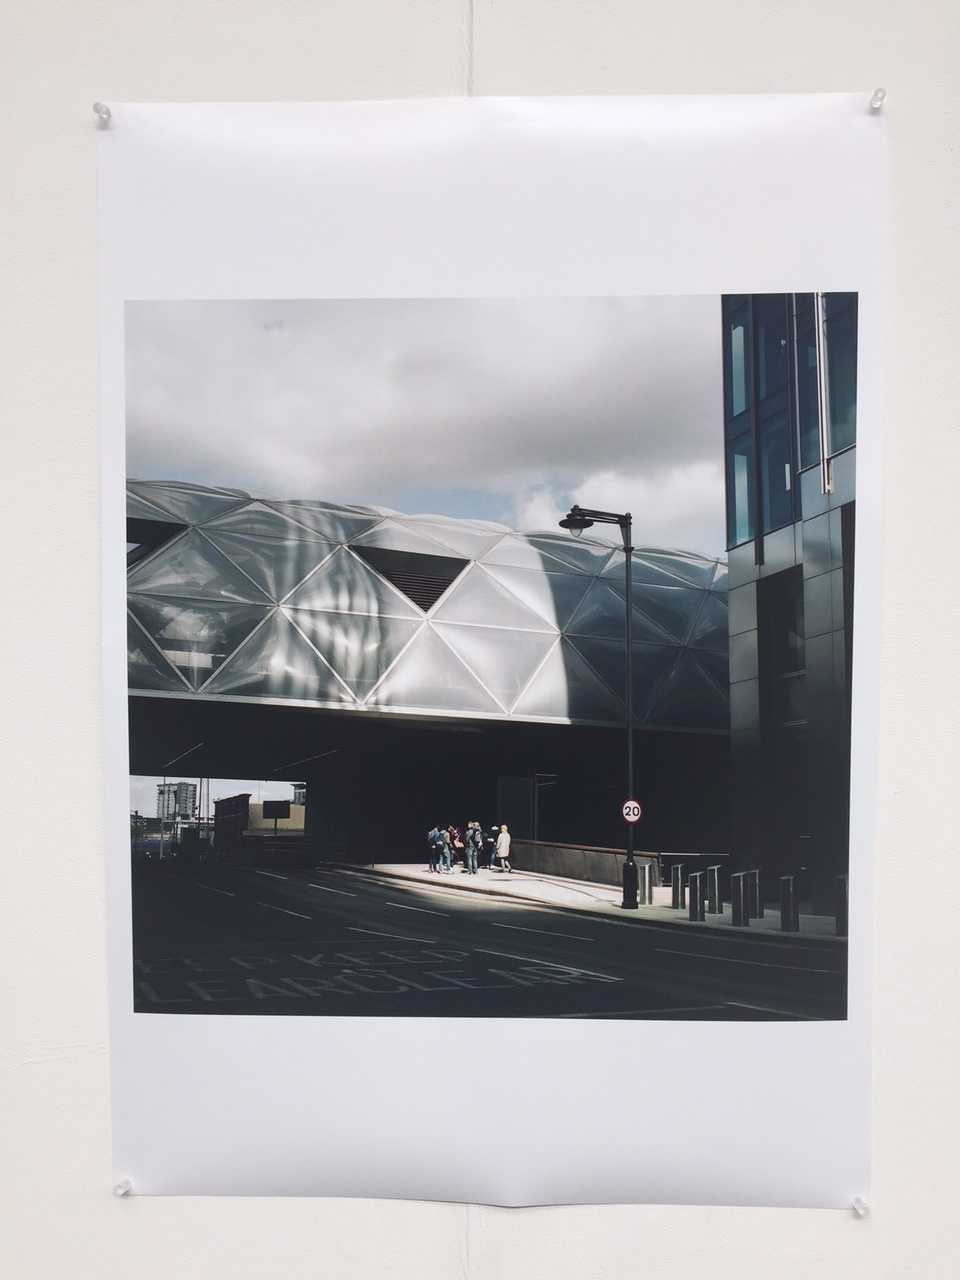 Original A1 print exhibited at The Old Truman Brewery.£629 - Item Code: EP4